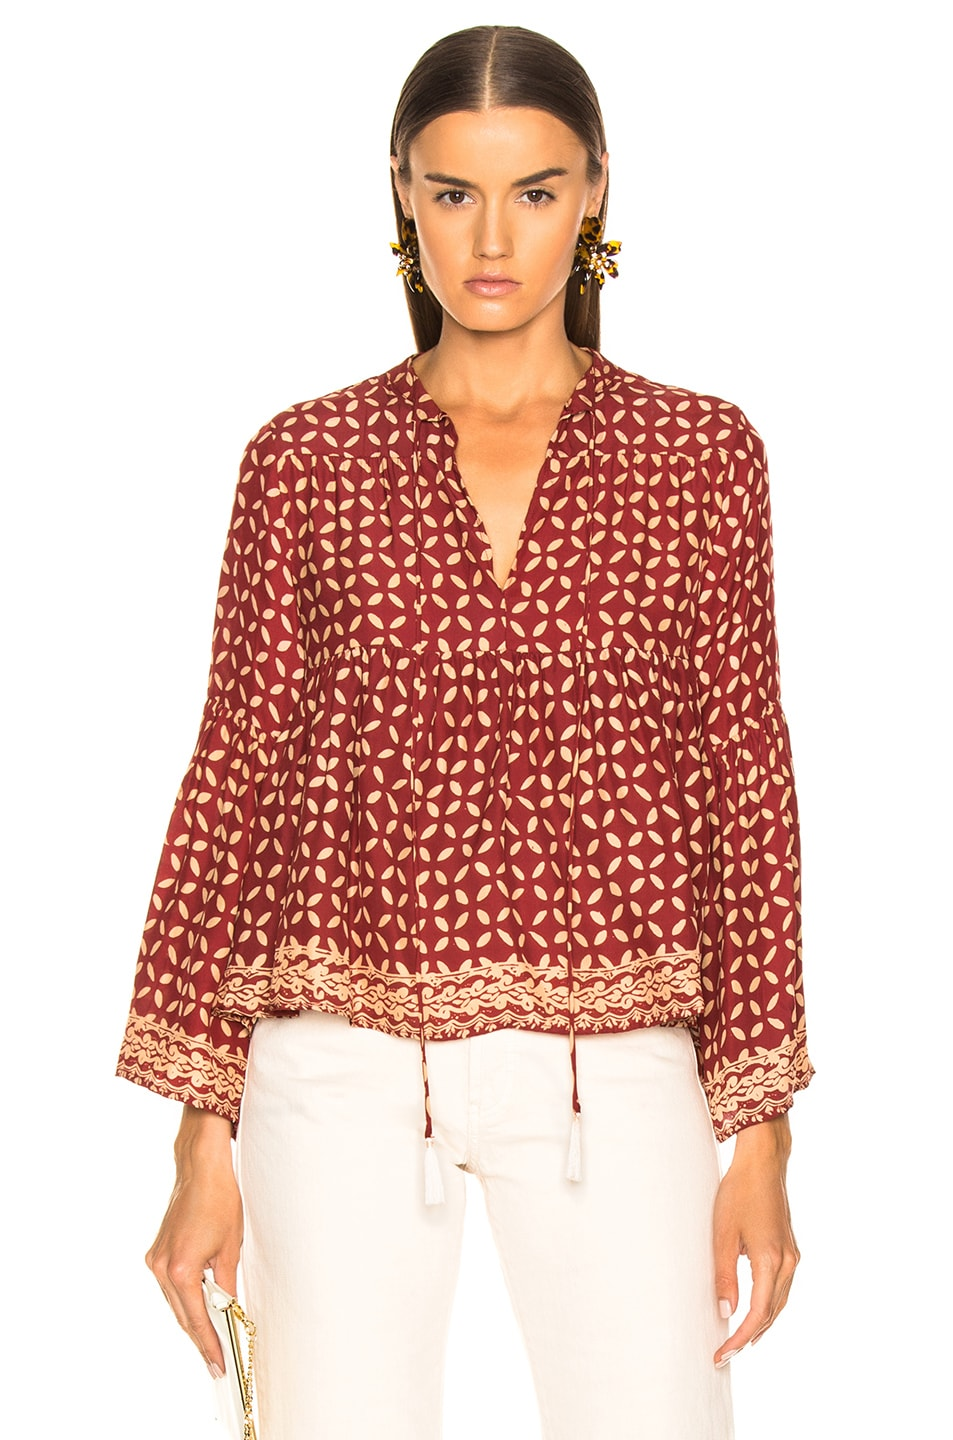 Image 1 of Natalie Martin Jerusha Top in Sand Dollar Red